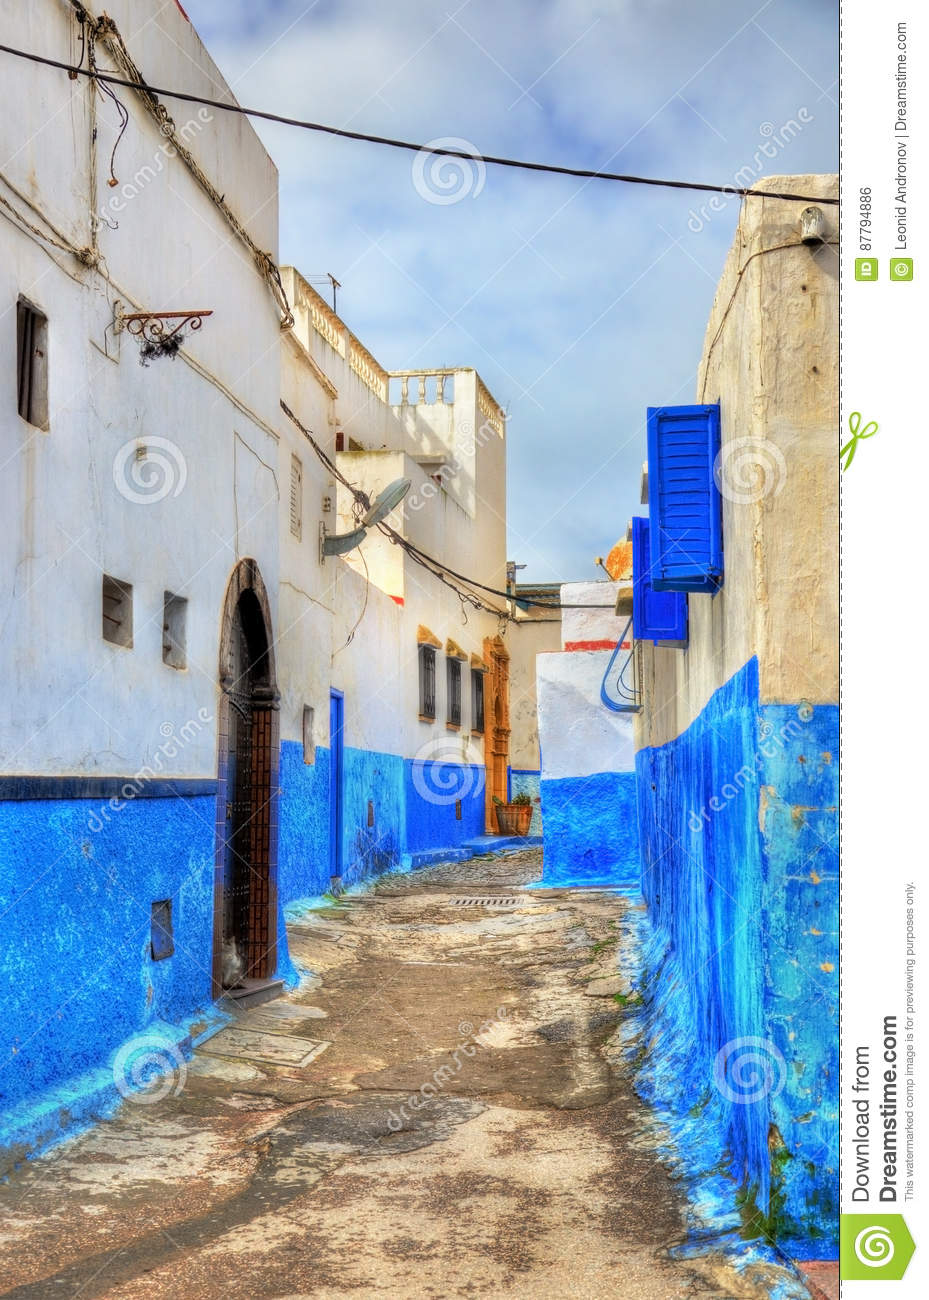 Famous Blue And White Houses In Kasbah Of The Udayas Rabat Morocco Stock Photo Image 87794886